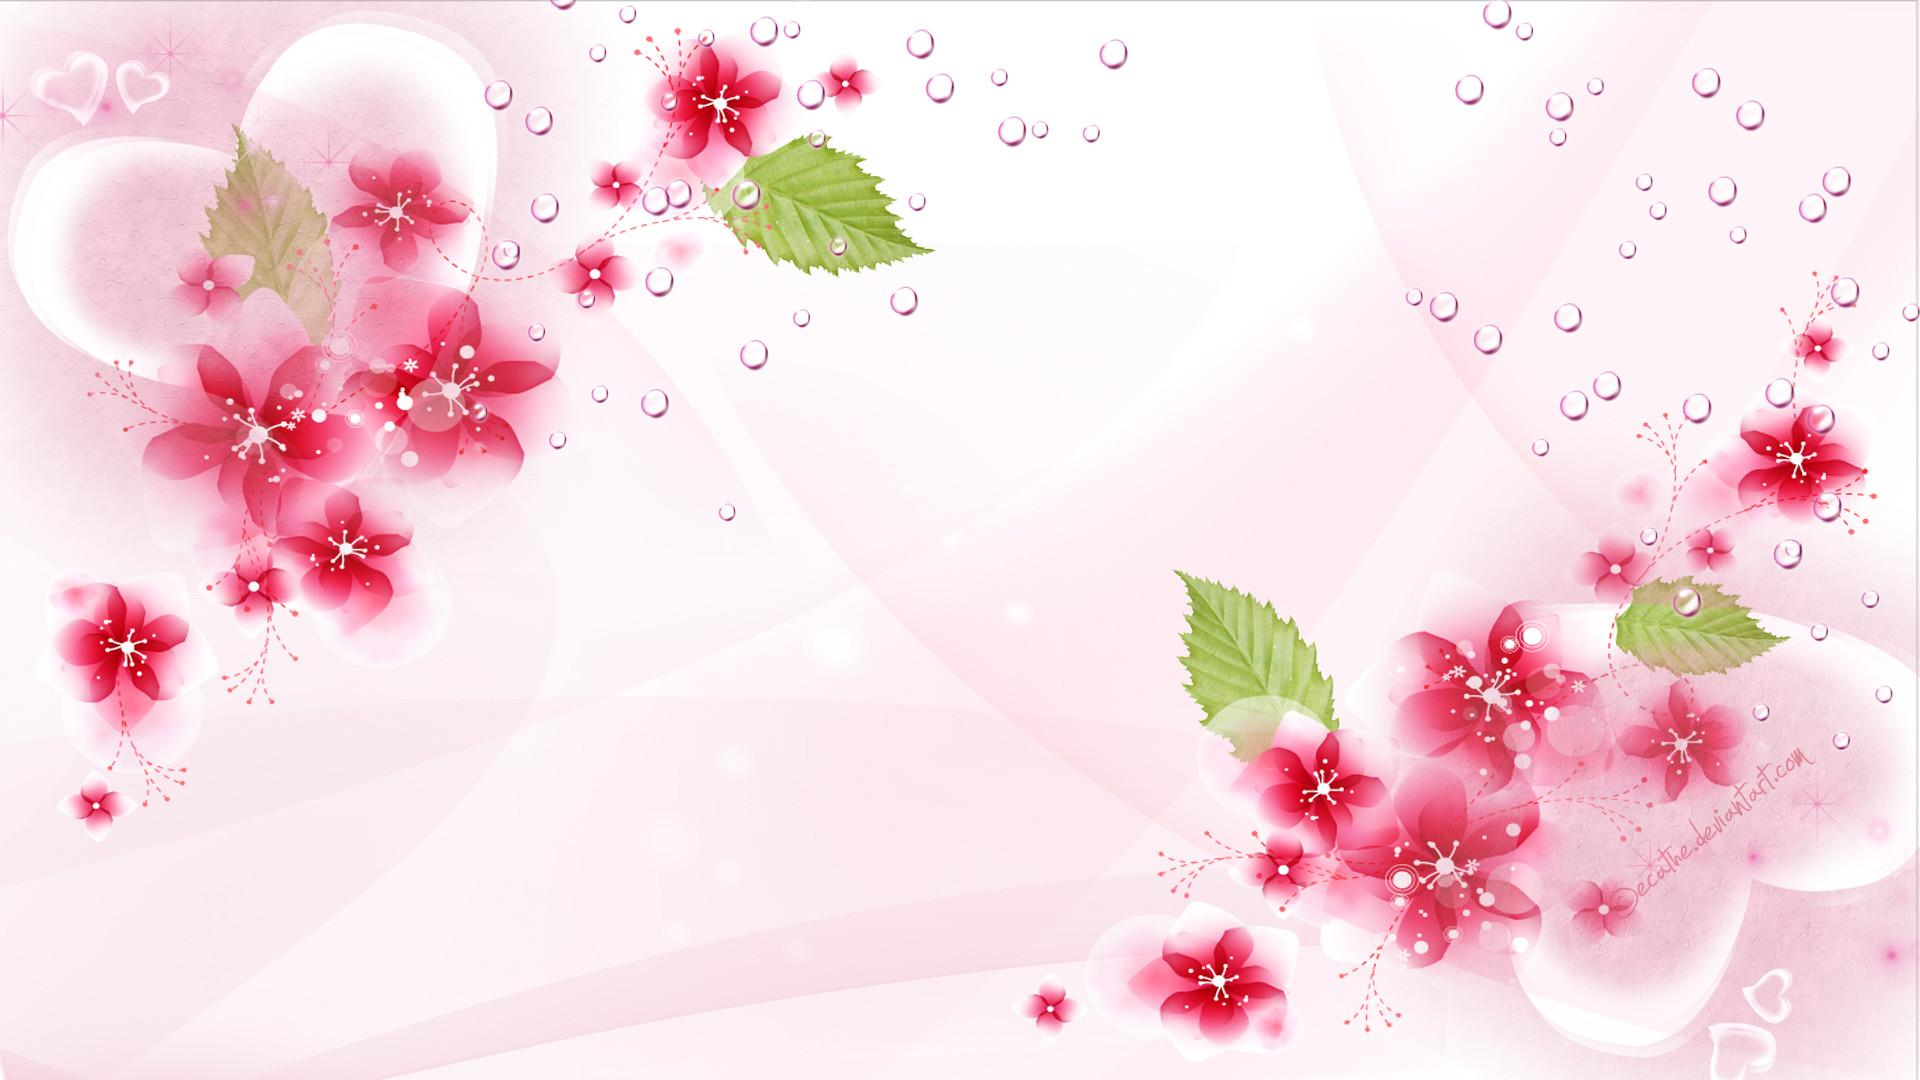 Background wallpaper flowers